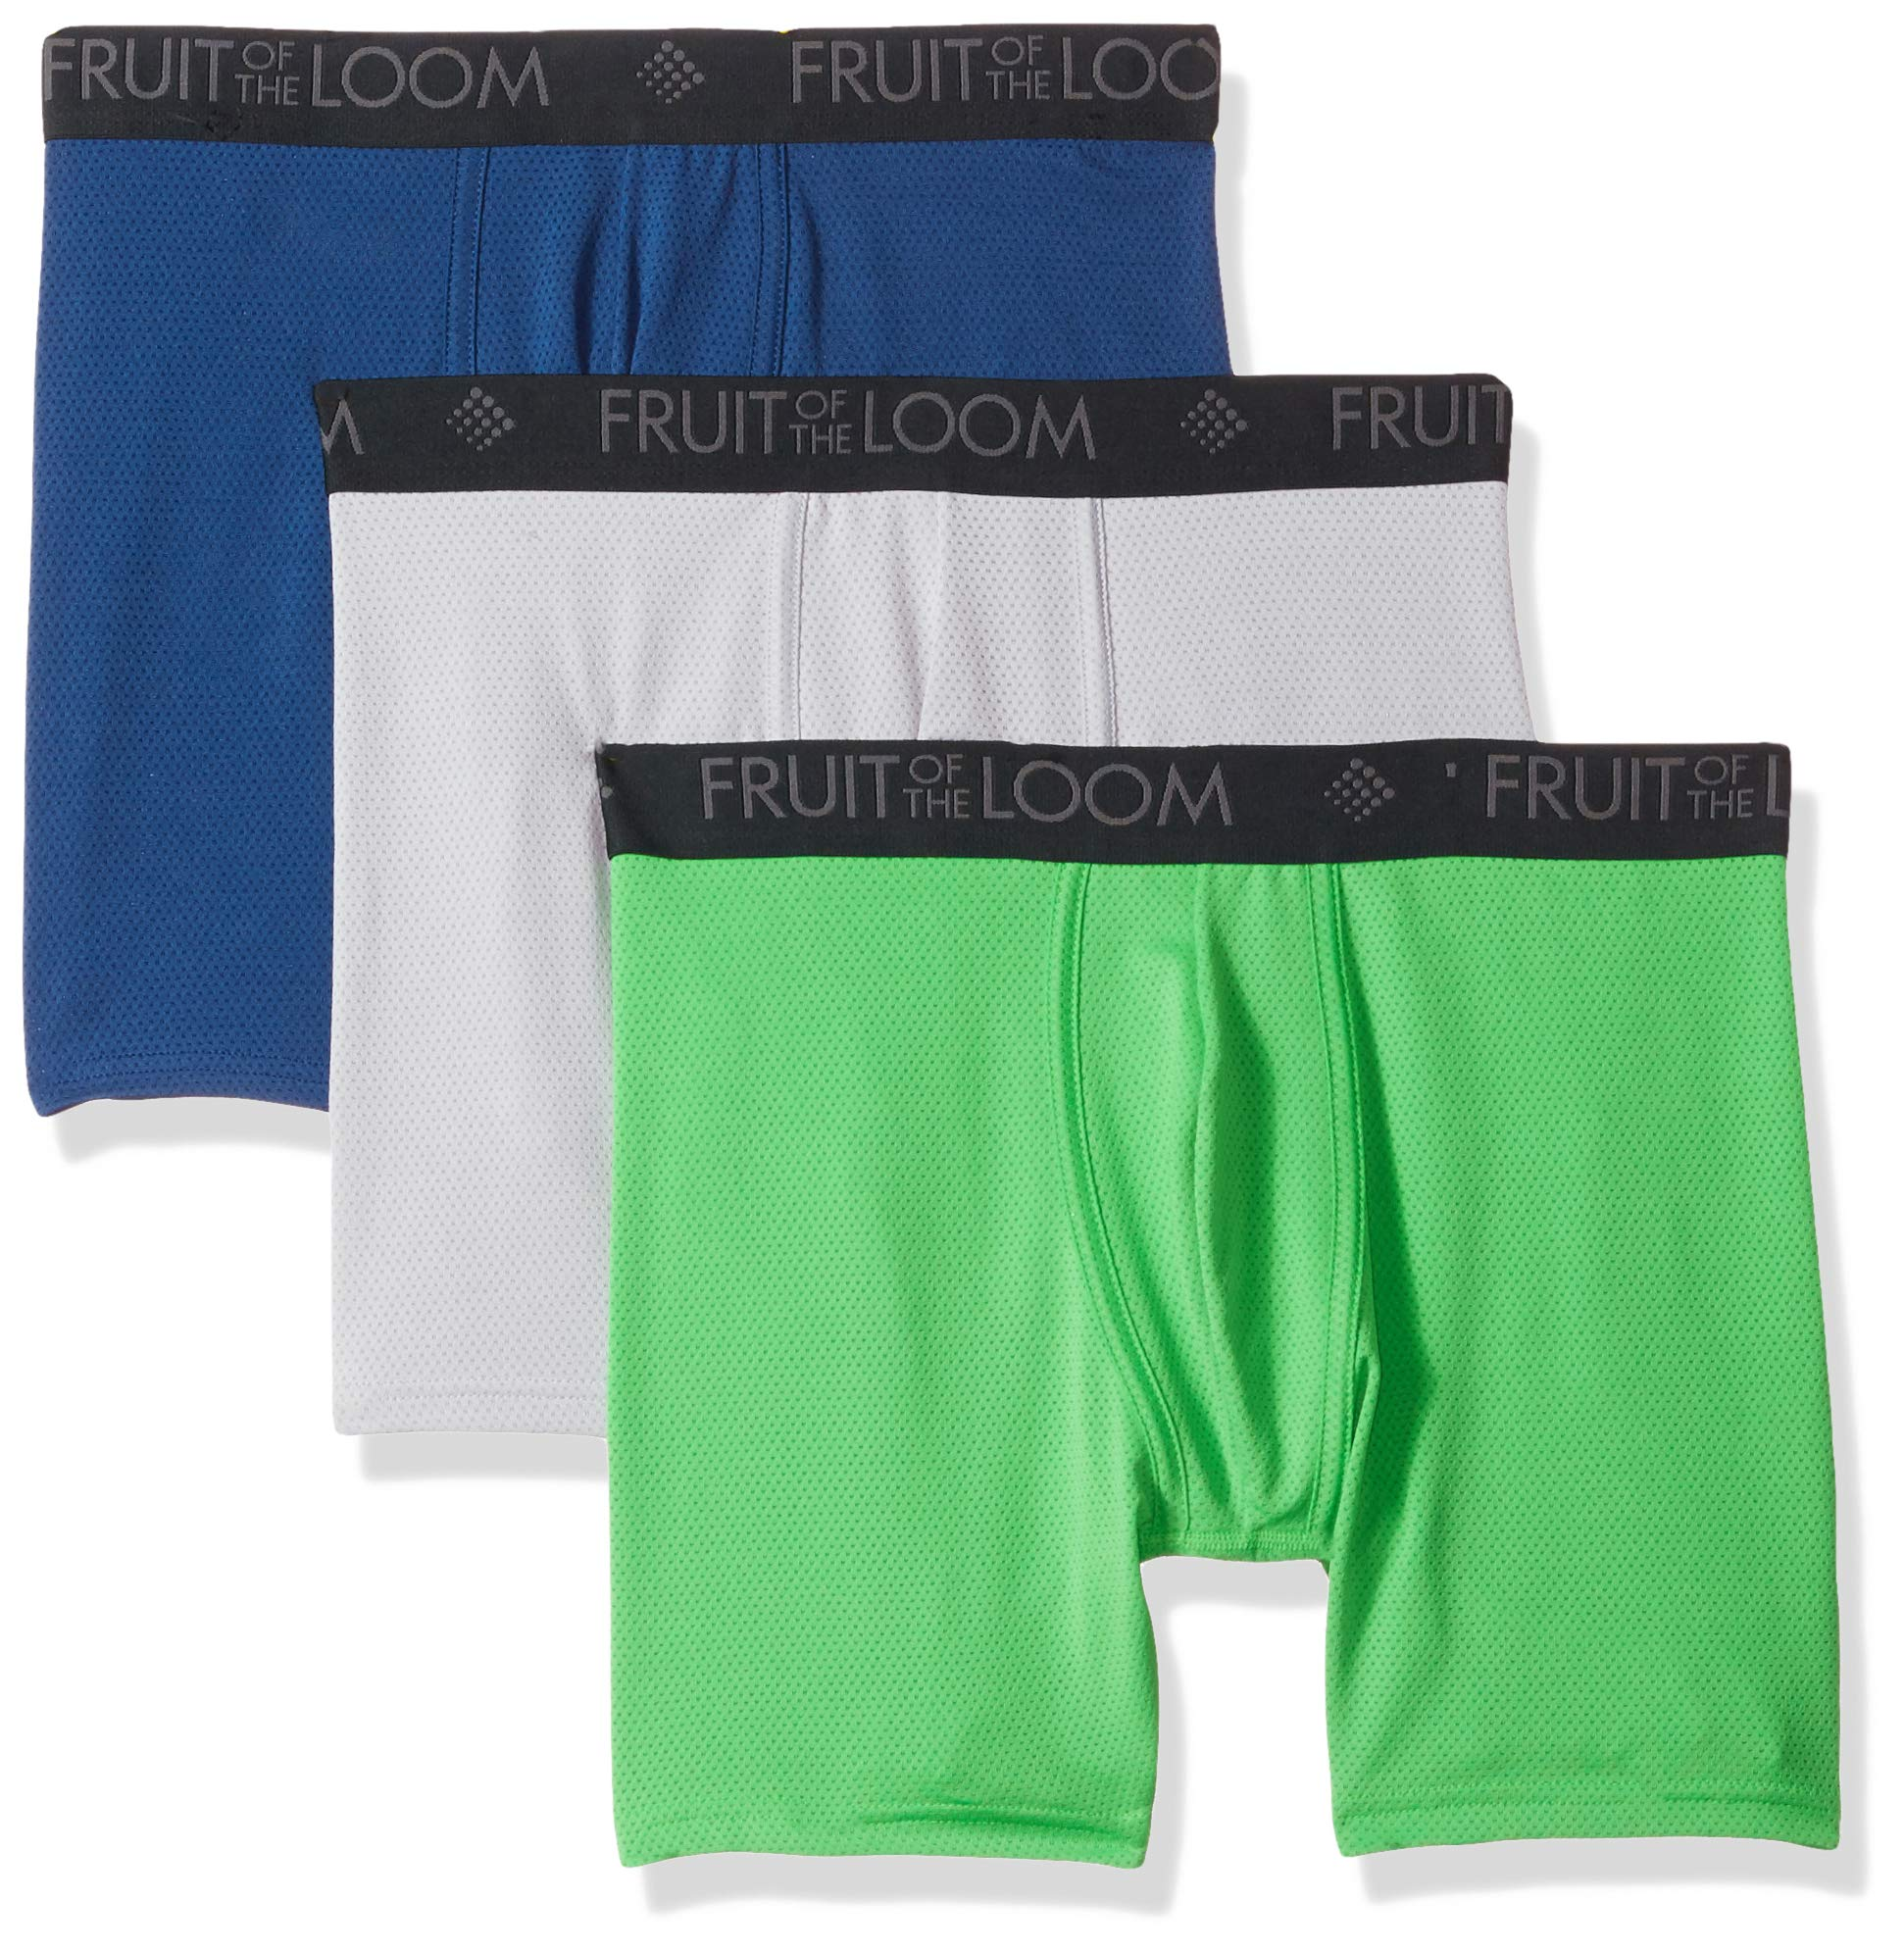 Fruit of the Loom Men's Breathable Underwear, Micro Mesh - Assorted Color - Boxer Brief, Large by Fruit of the Loom